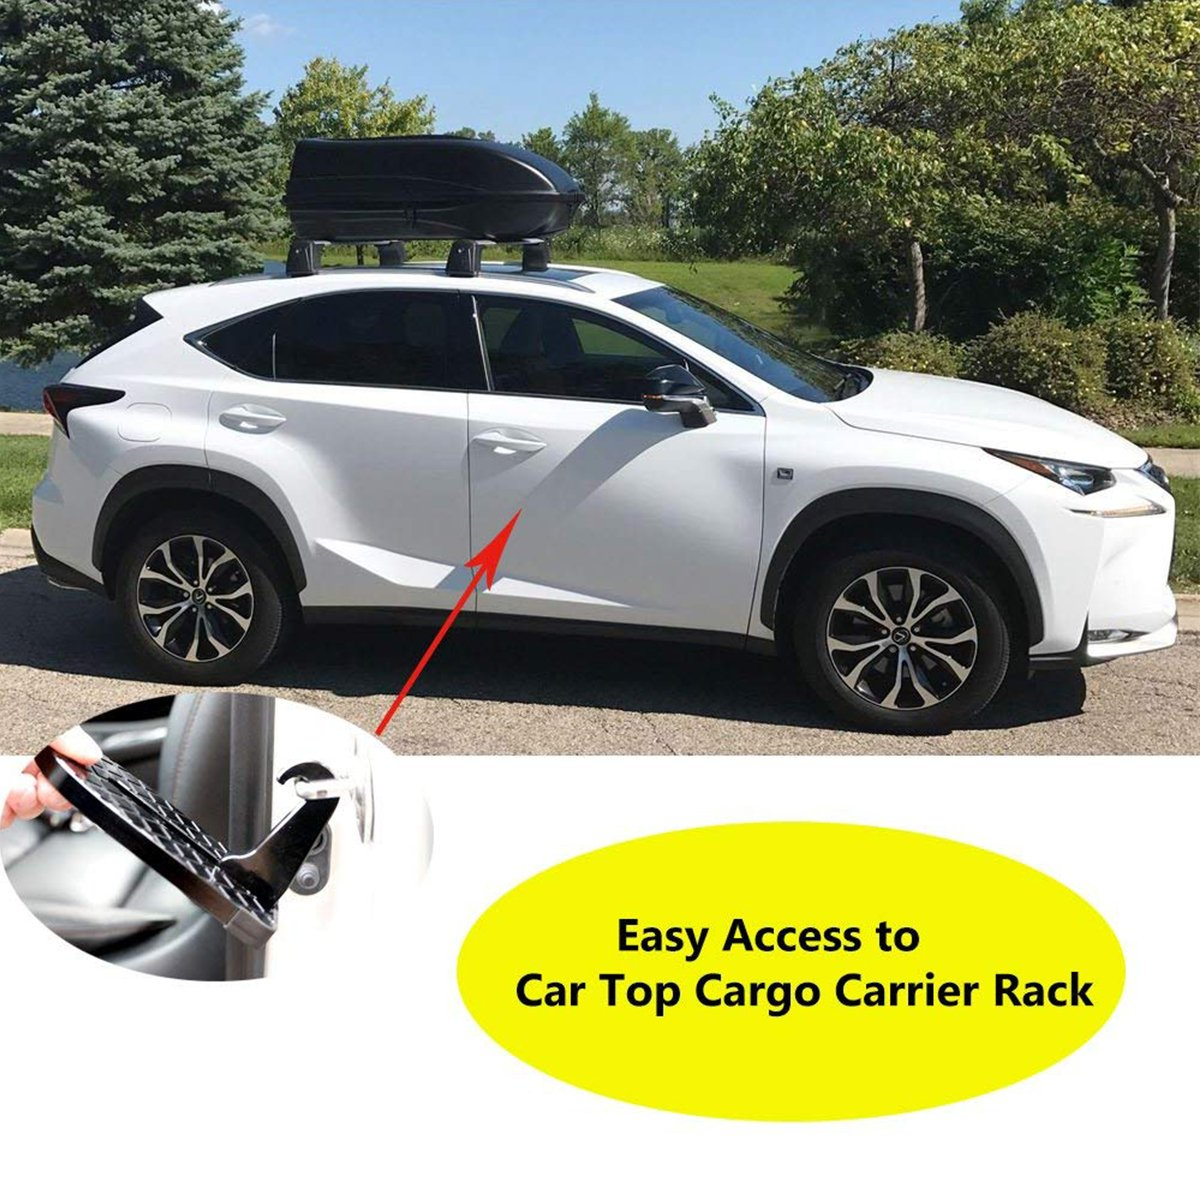 FitMaker Vehicle Hooked, U Shaped Vehicle Rooftop Doorstep with Saftey Hammer Function for Easy Access to Car Rooftop Roof-rack, Doorstep for various vehicles by FitMaker (Image #7)